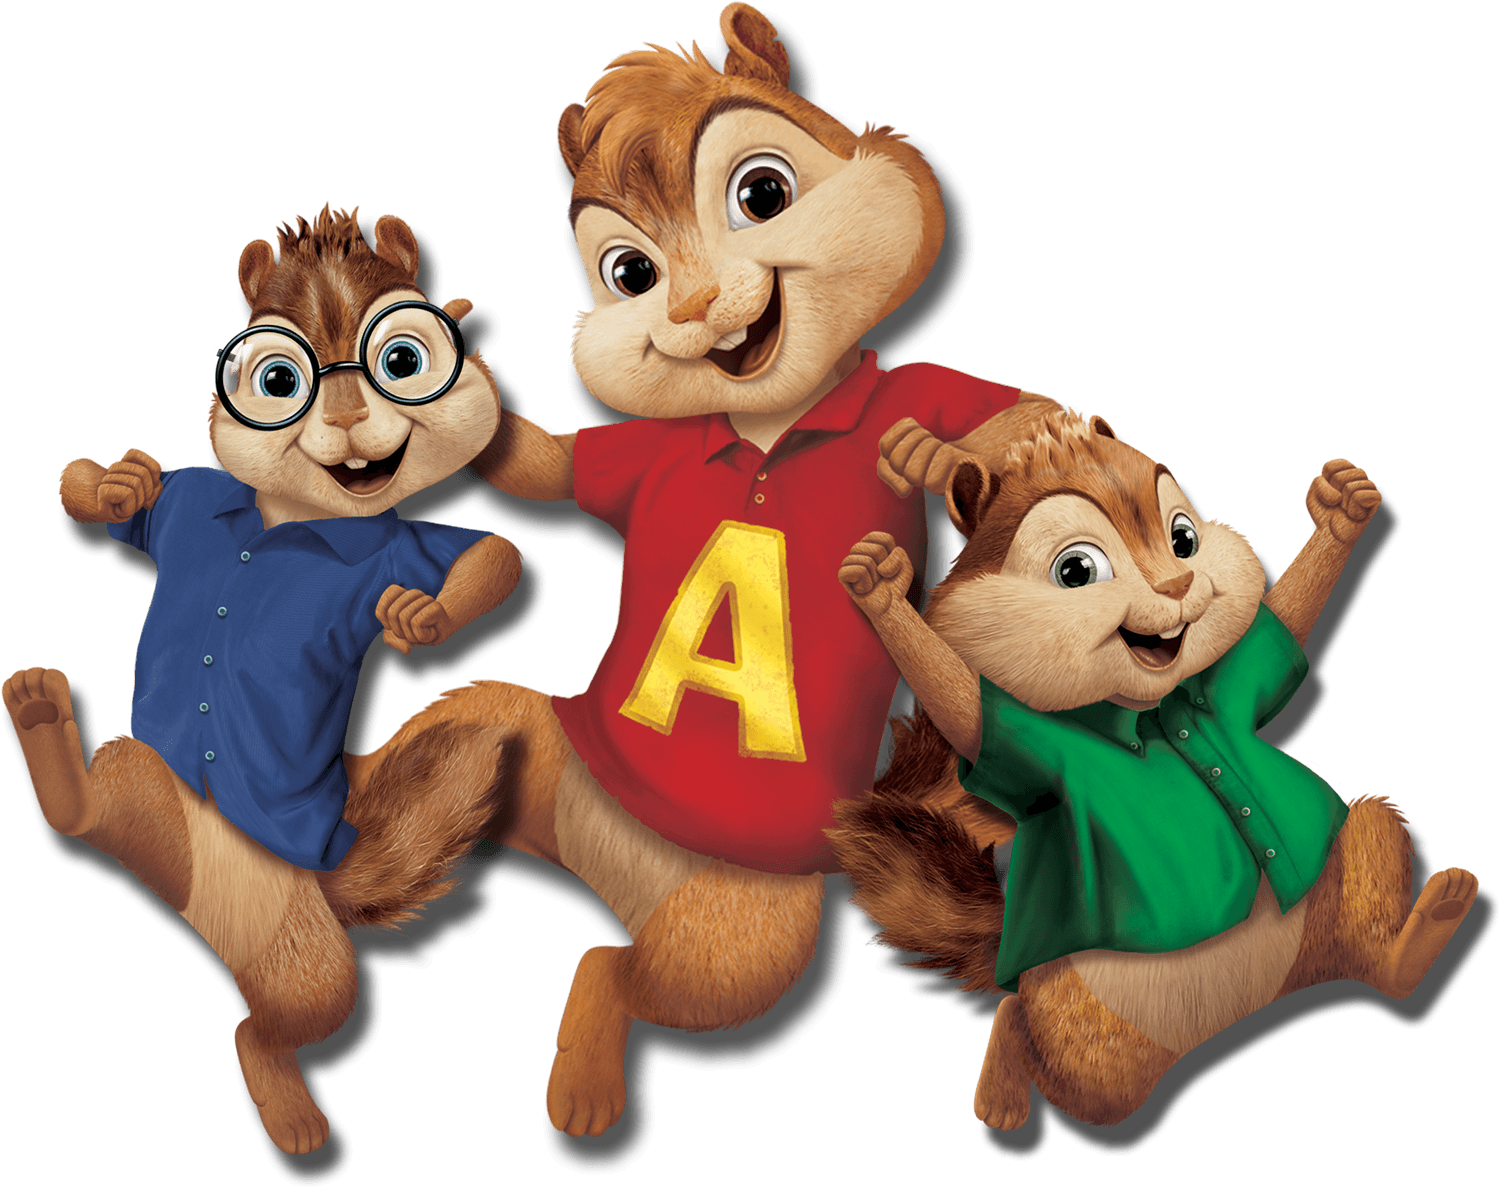 Alvin And The Chipmunks Backgrounds, Compatible - PC, Mobile, Gadgets| 1500x1188 px